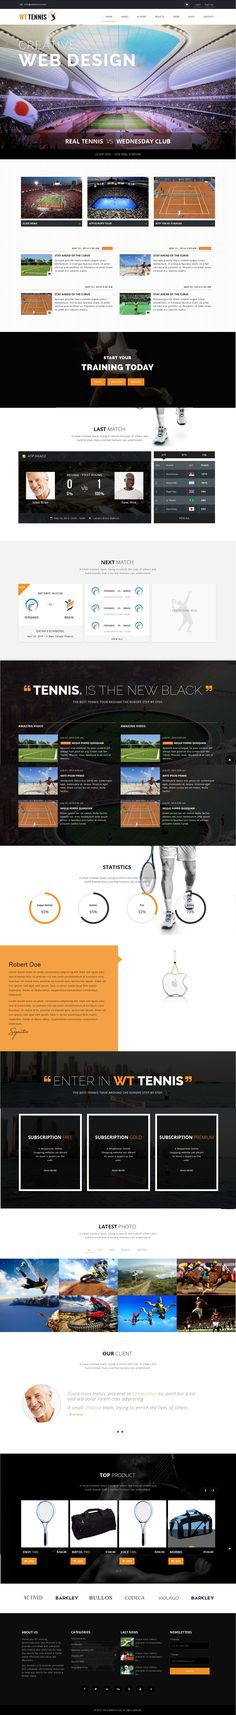 WT #Tennis is the best Sport #HTML theme As you can see for yourself, it has a powerful adrenaline vibe to it, with a very dynamic homepage slider and bold typography, giving this #sport #HTML theme a sharp & modern feel. #website #AnnaKournikova